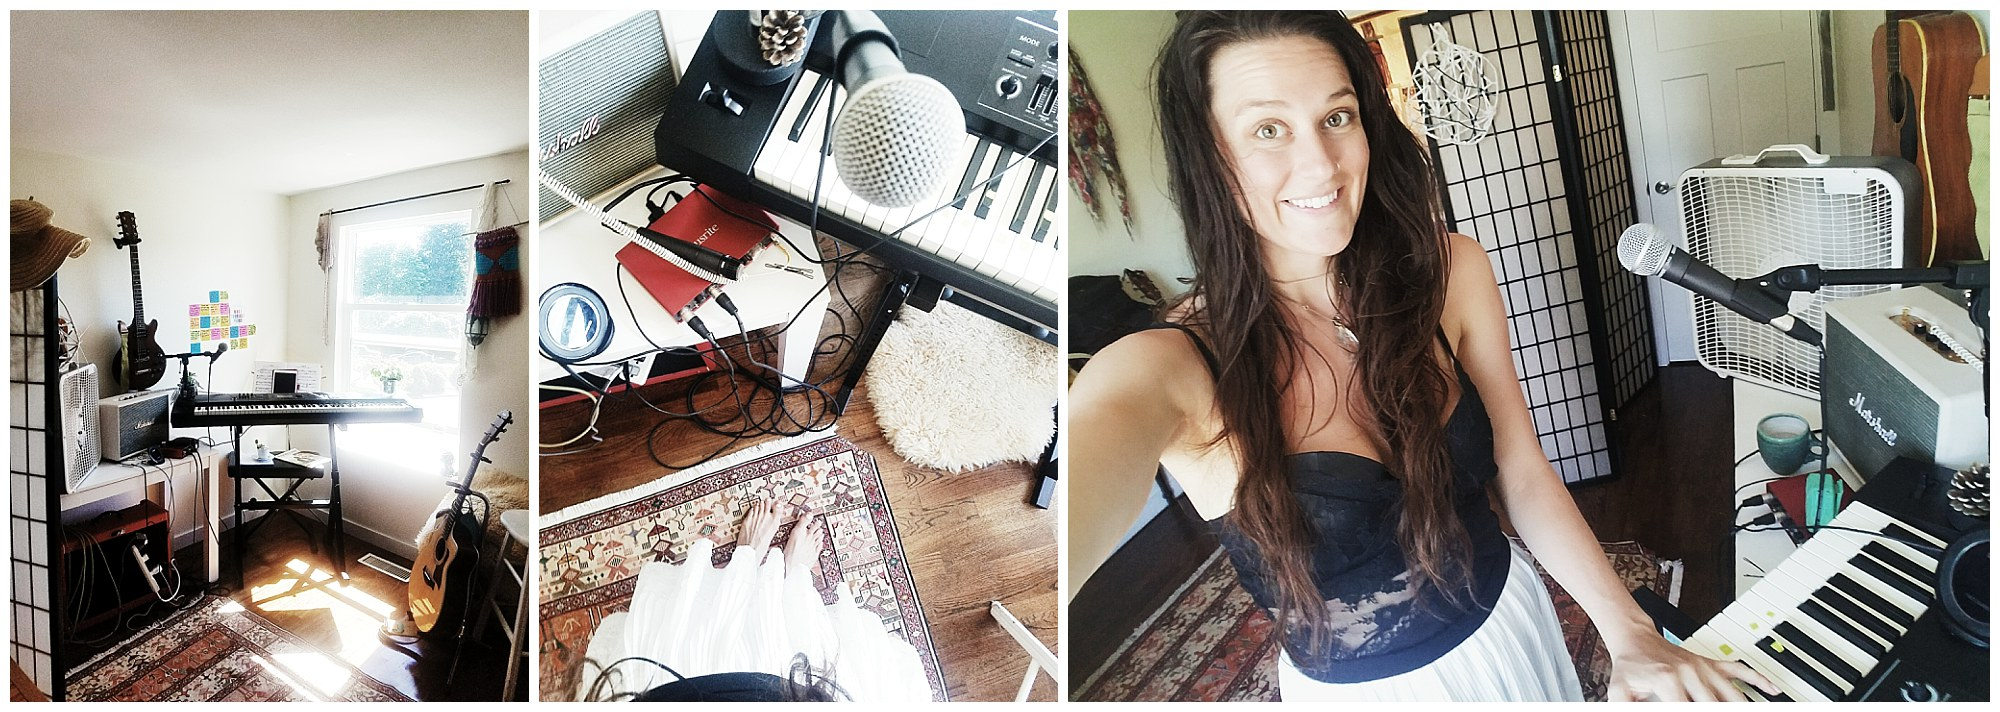 cha wilde - recording music - following dreams easy hard try